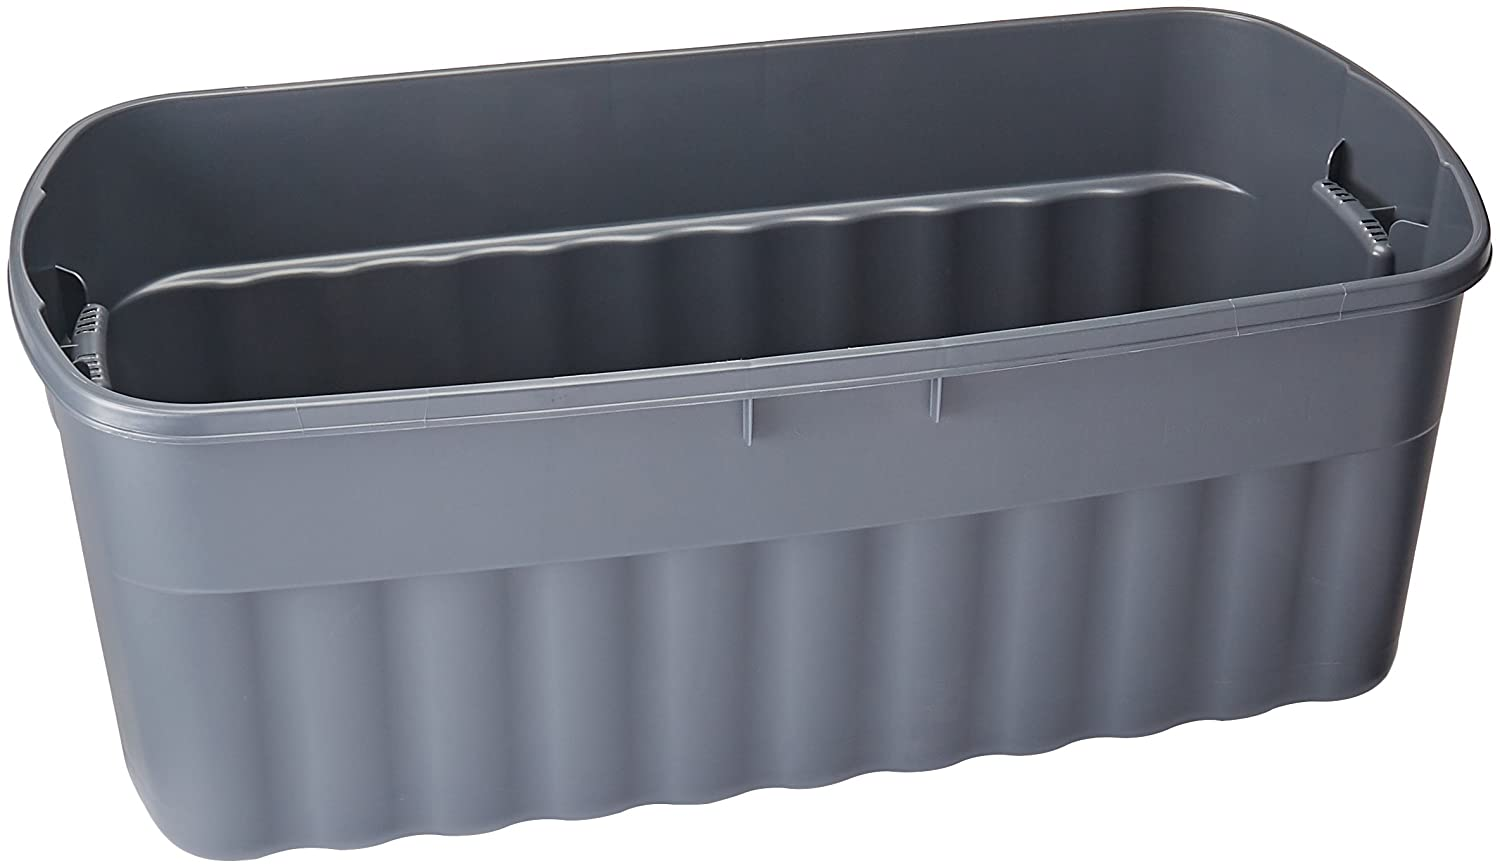 Extra Large Rubbermaid Storage Containers